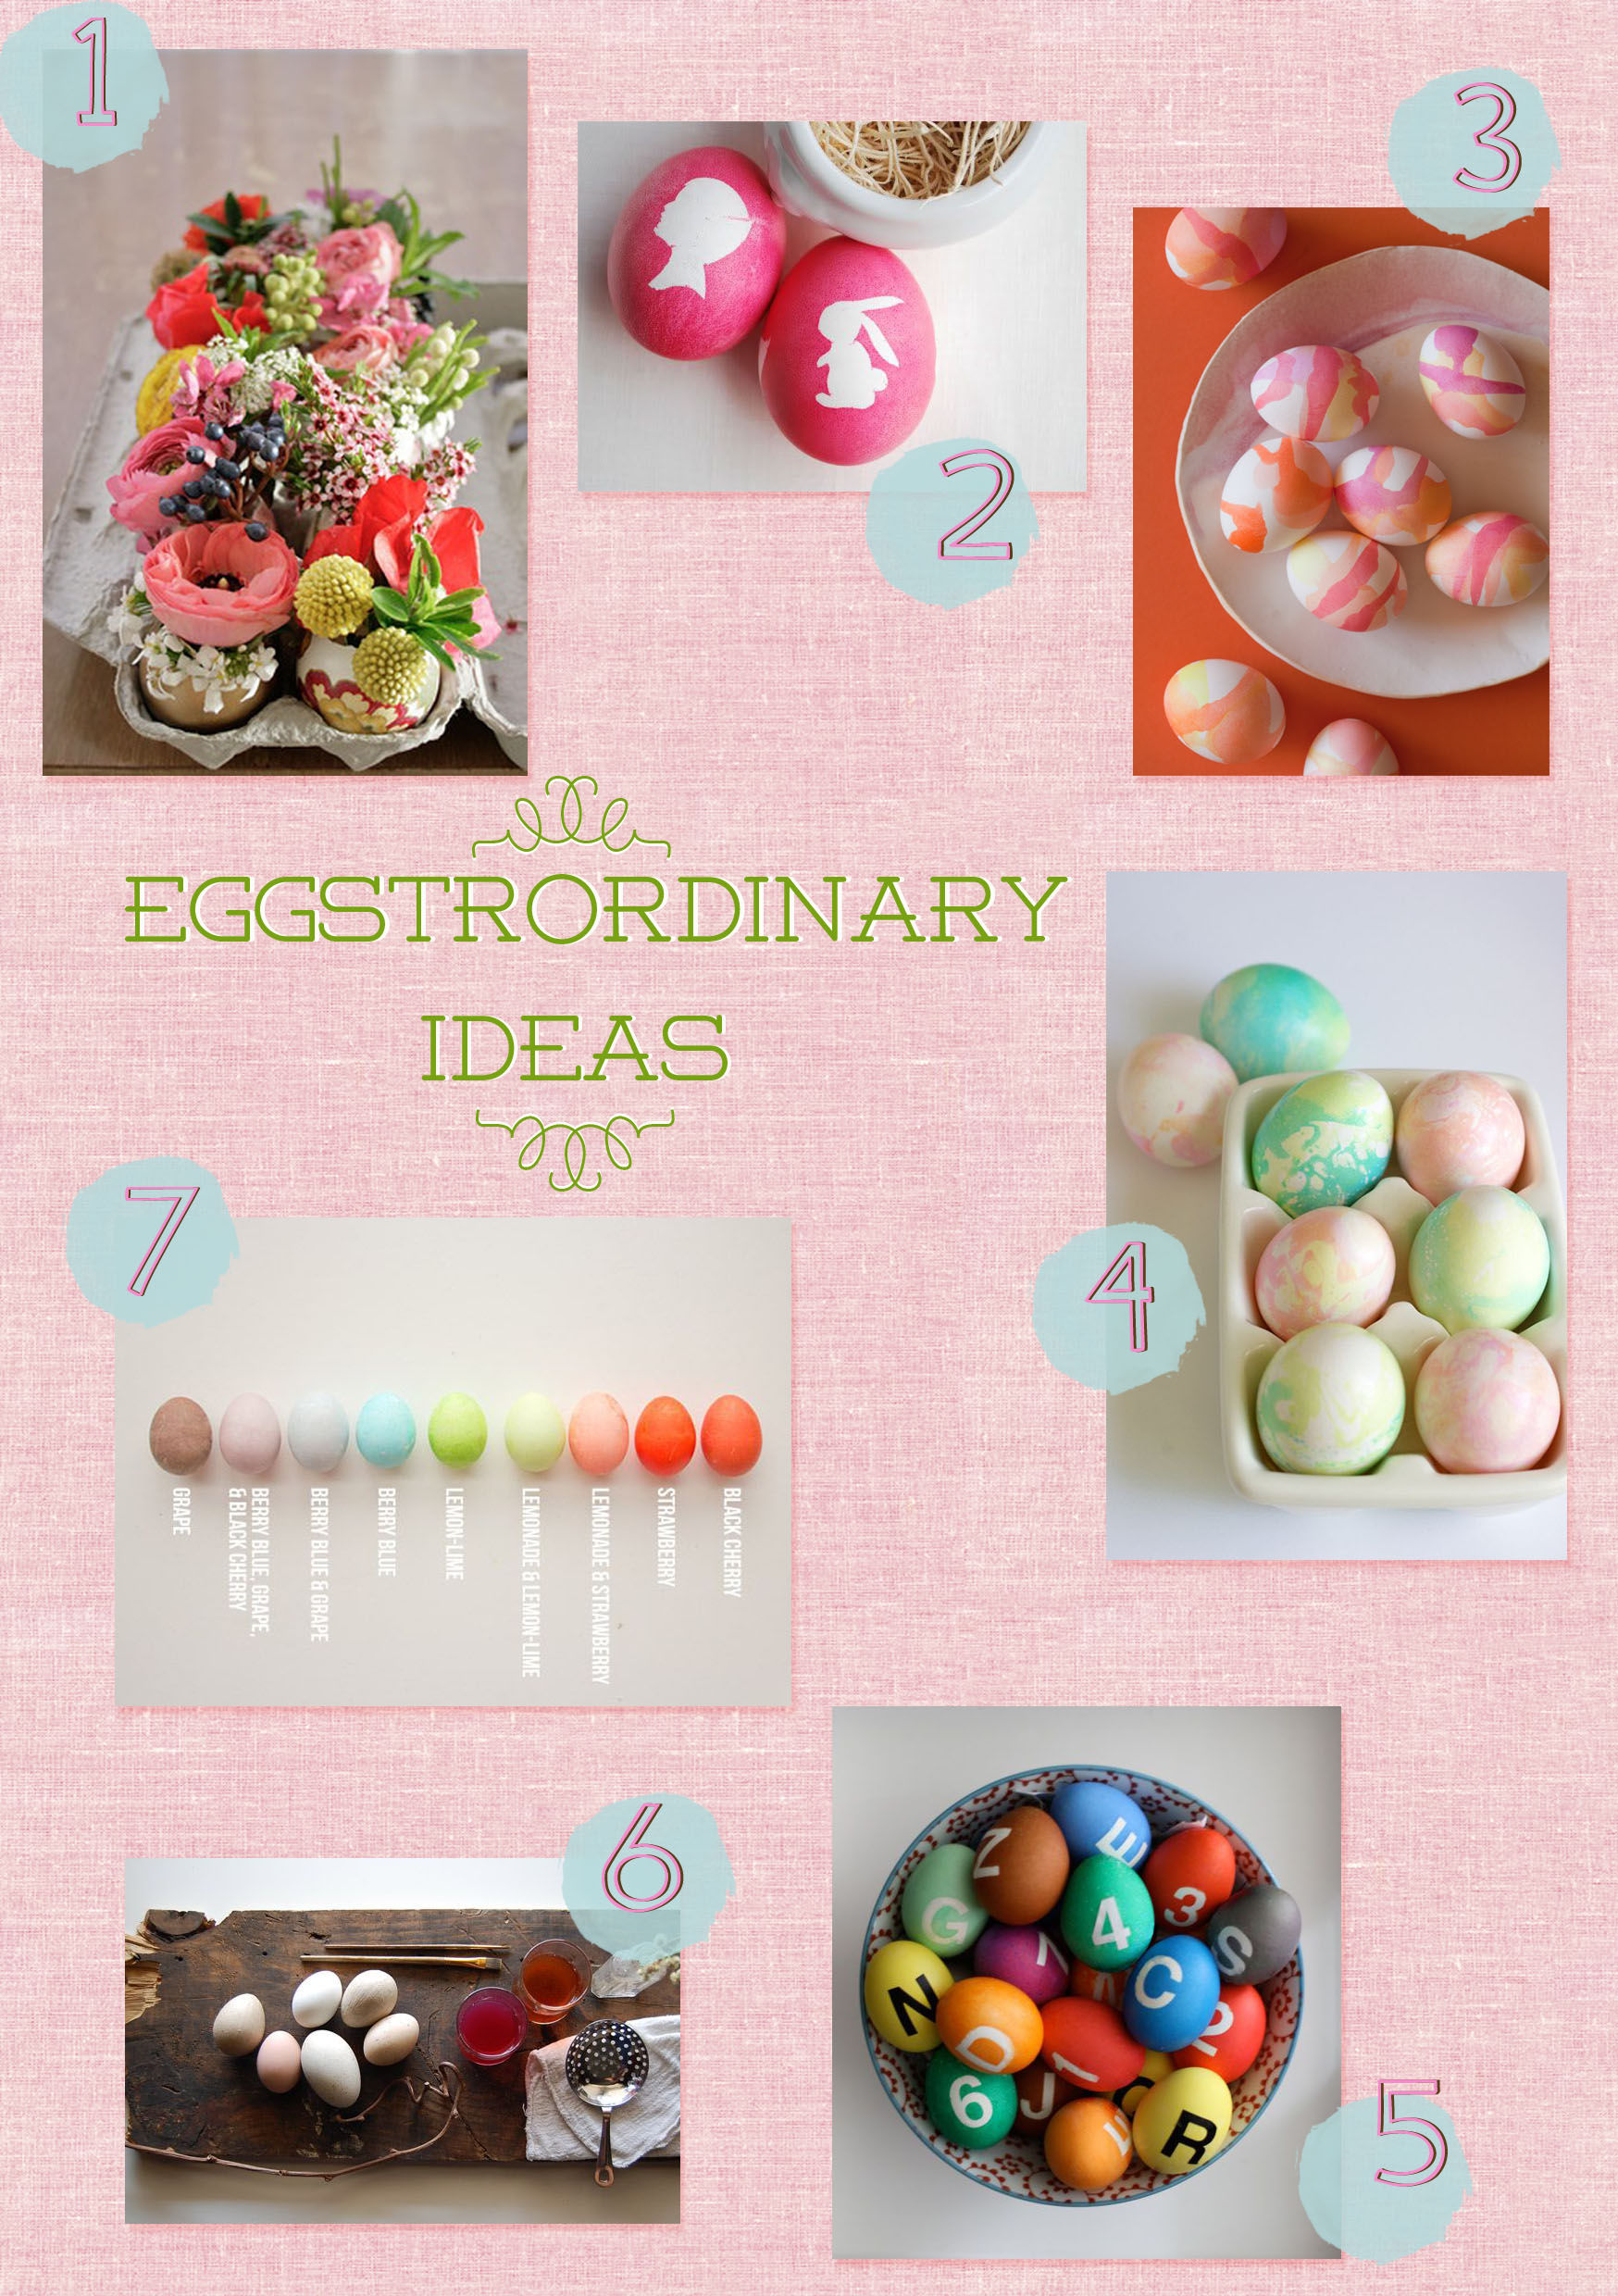 Jennifer Michie Eggstrordinary Ideas